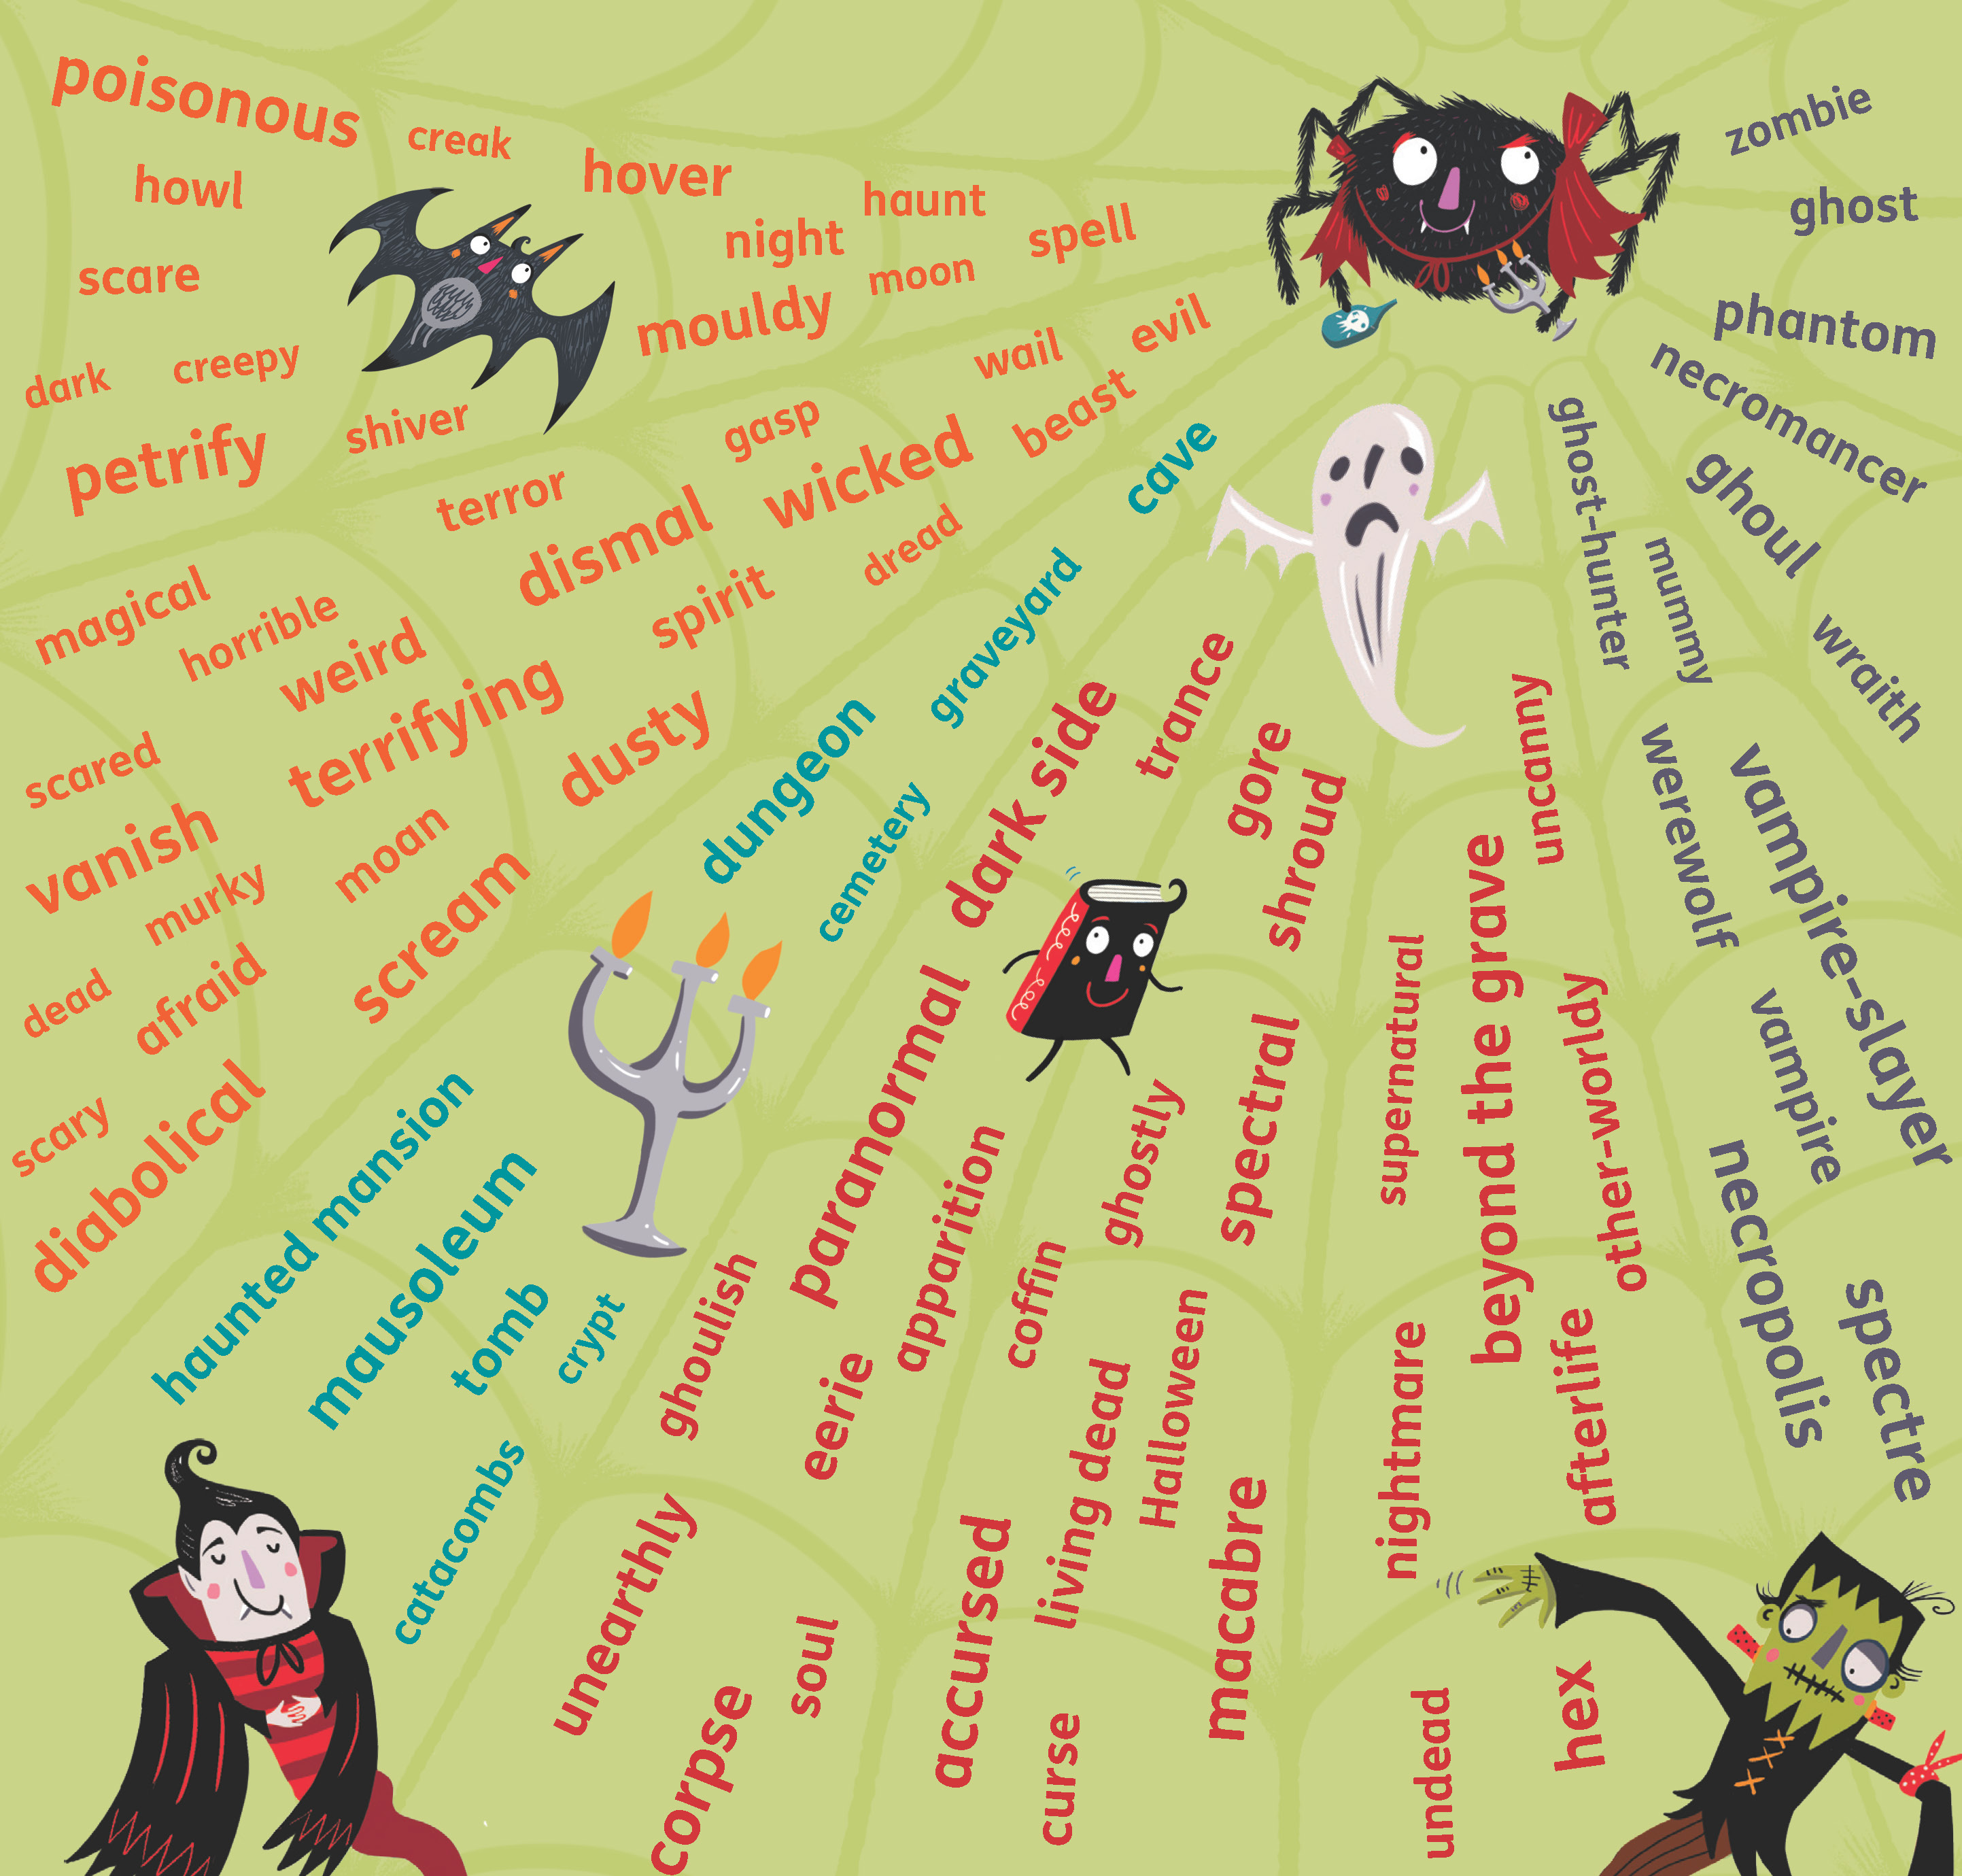 how to write your best scary story oxford education blog help you make your writing more powerful which words from this web could you use to describe the characters settings and events of your scary story